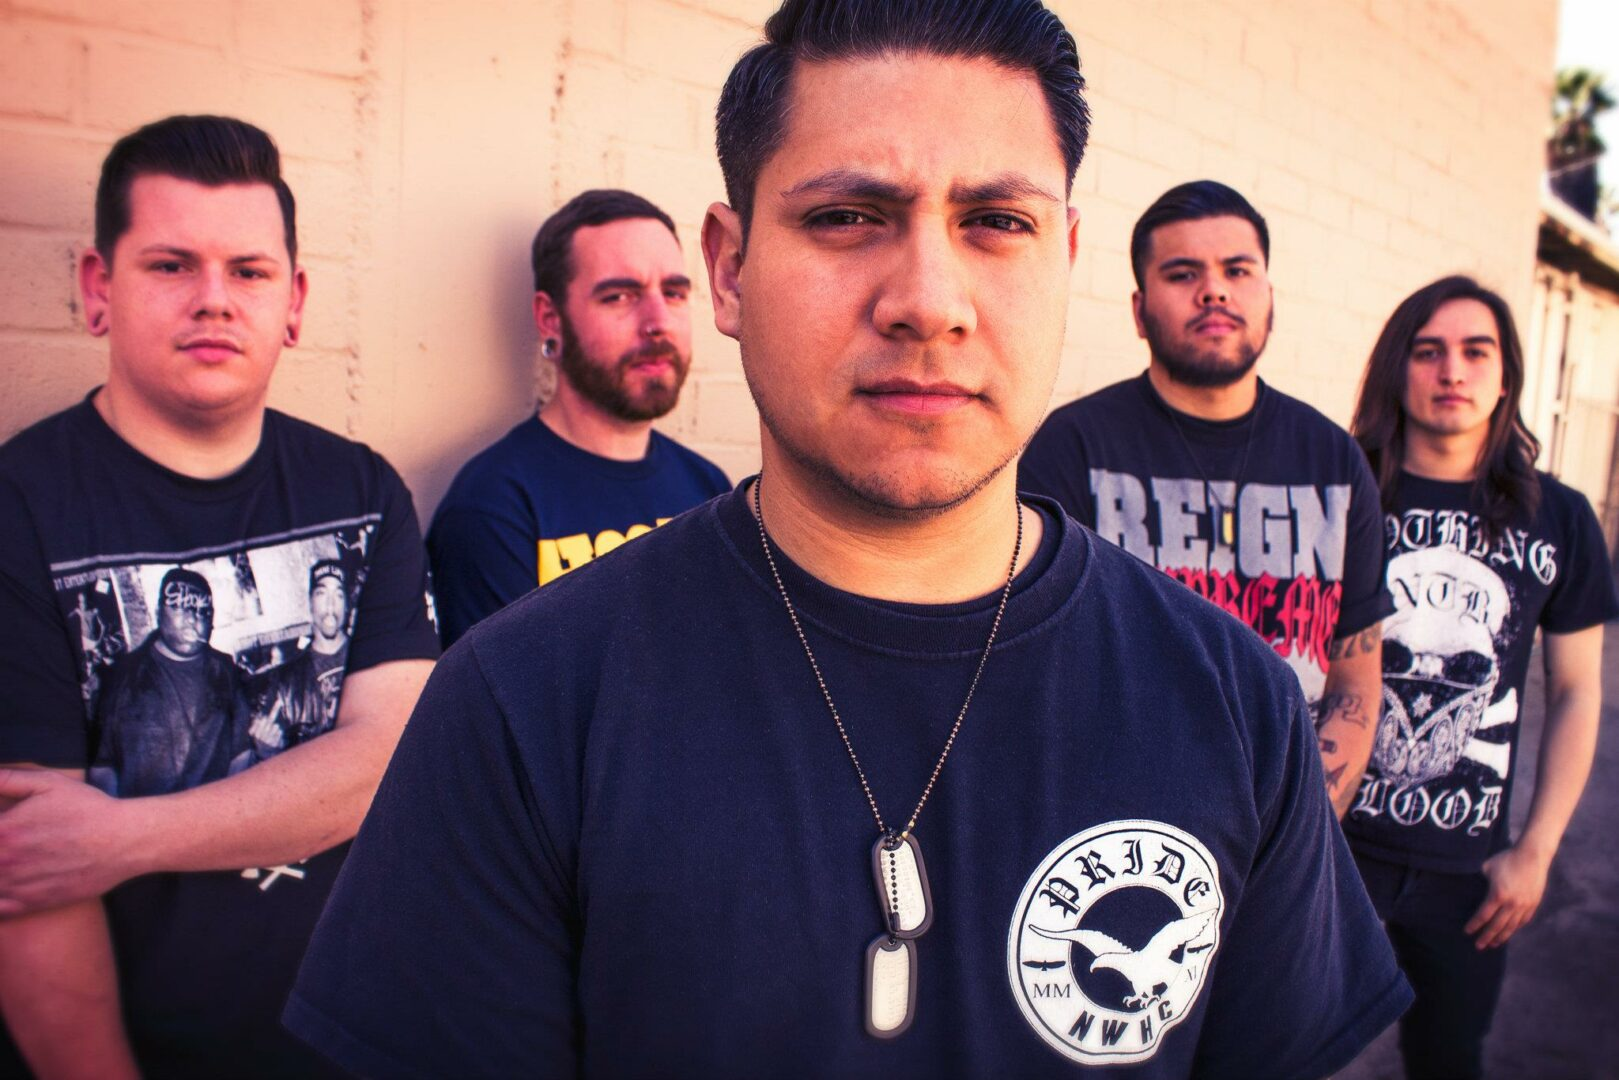 No Bragging Rights Announce Holiday Tour